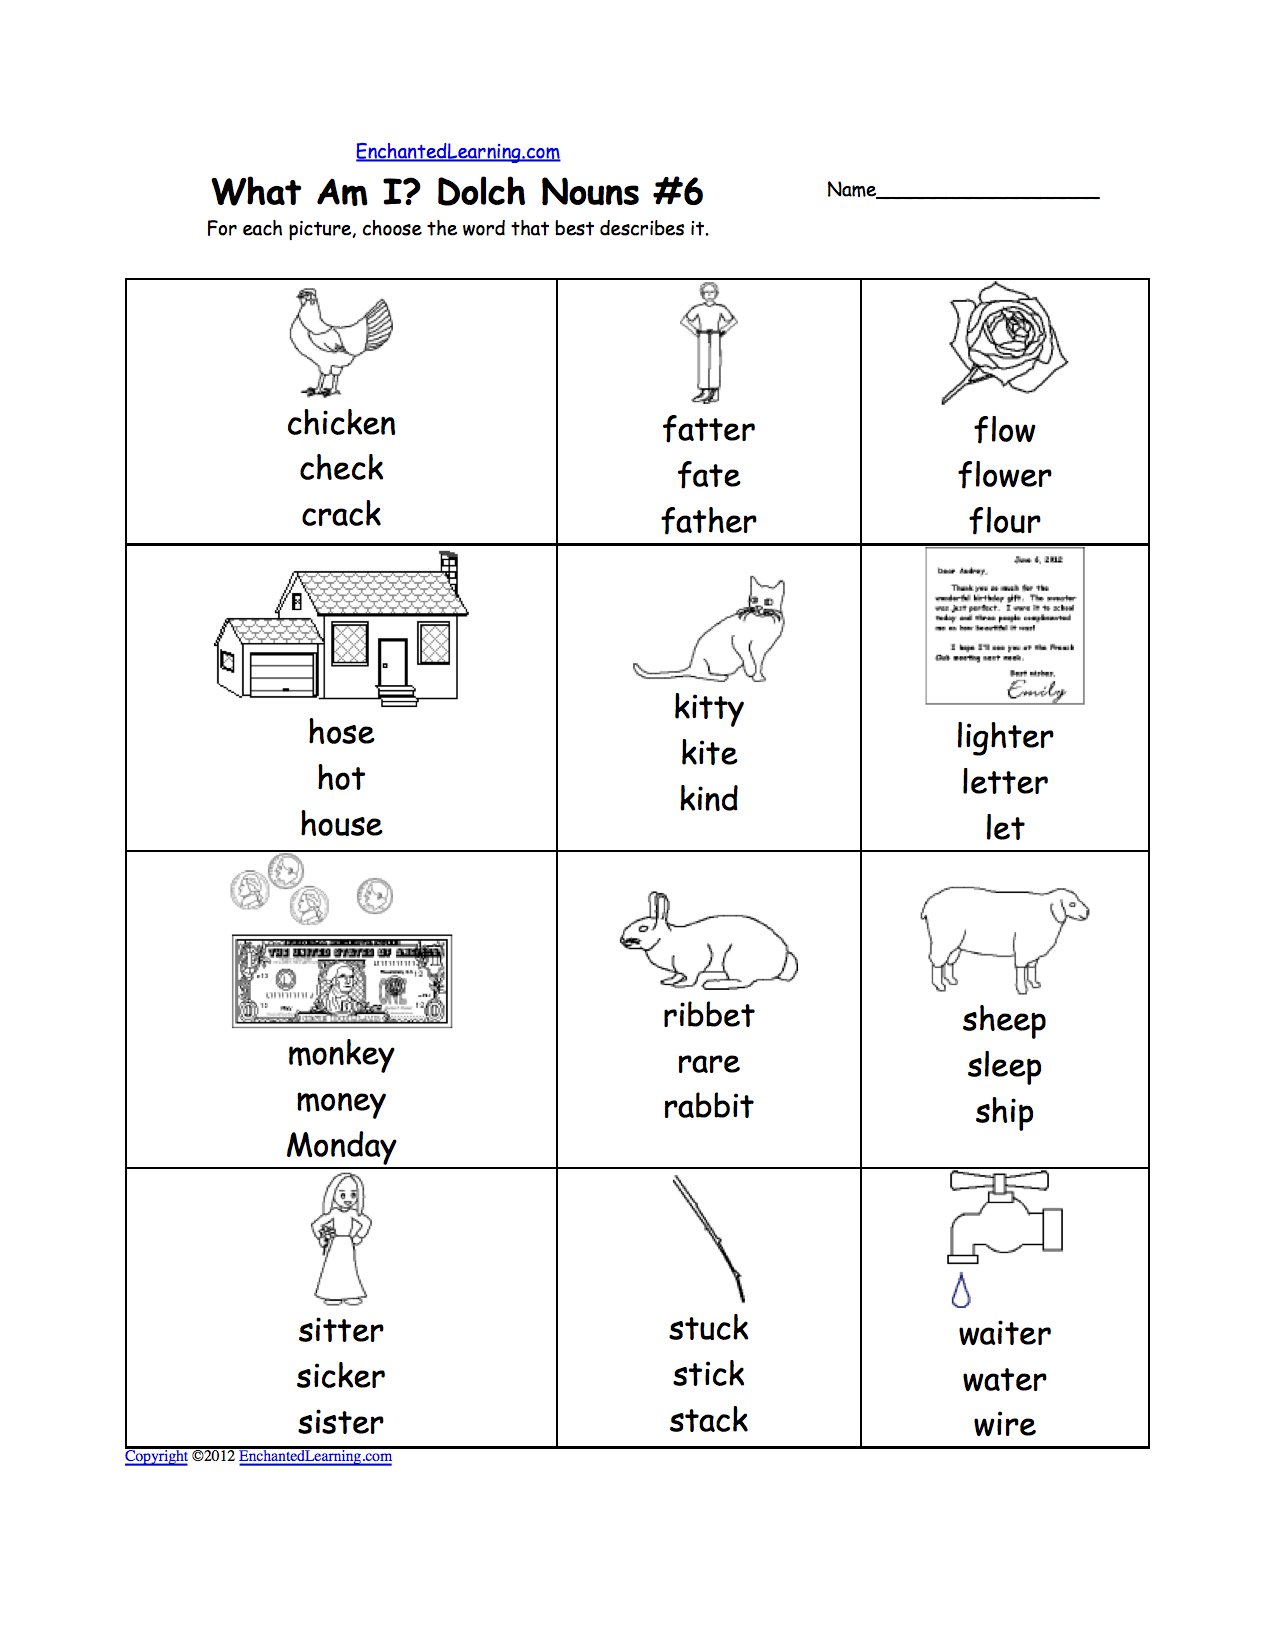 Worksheets Worksheets On Nouns what am i dolch nouns worksheet printouts enchantedlearning com